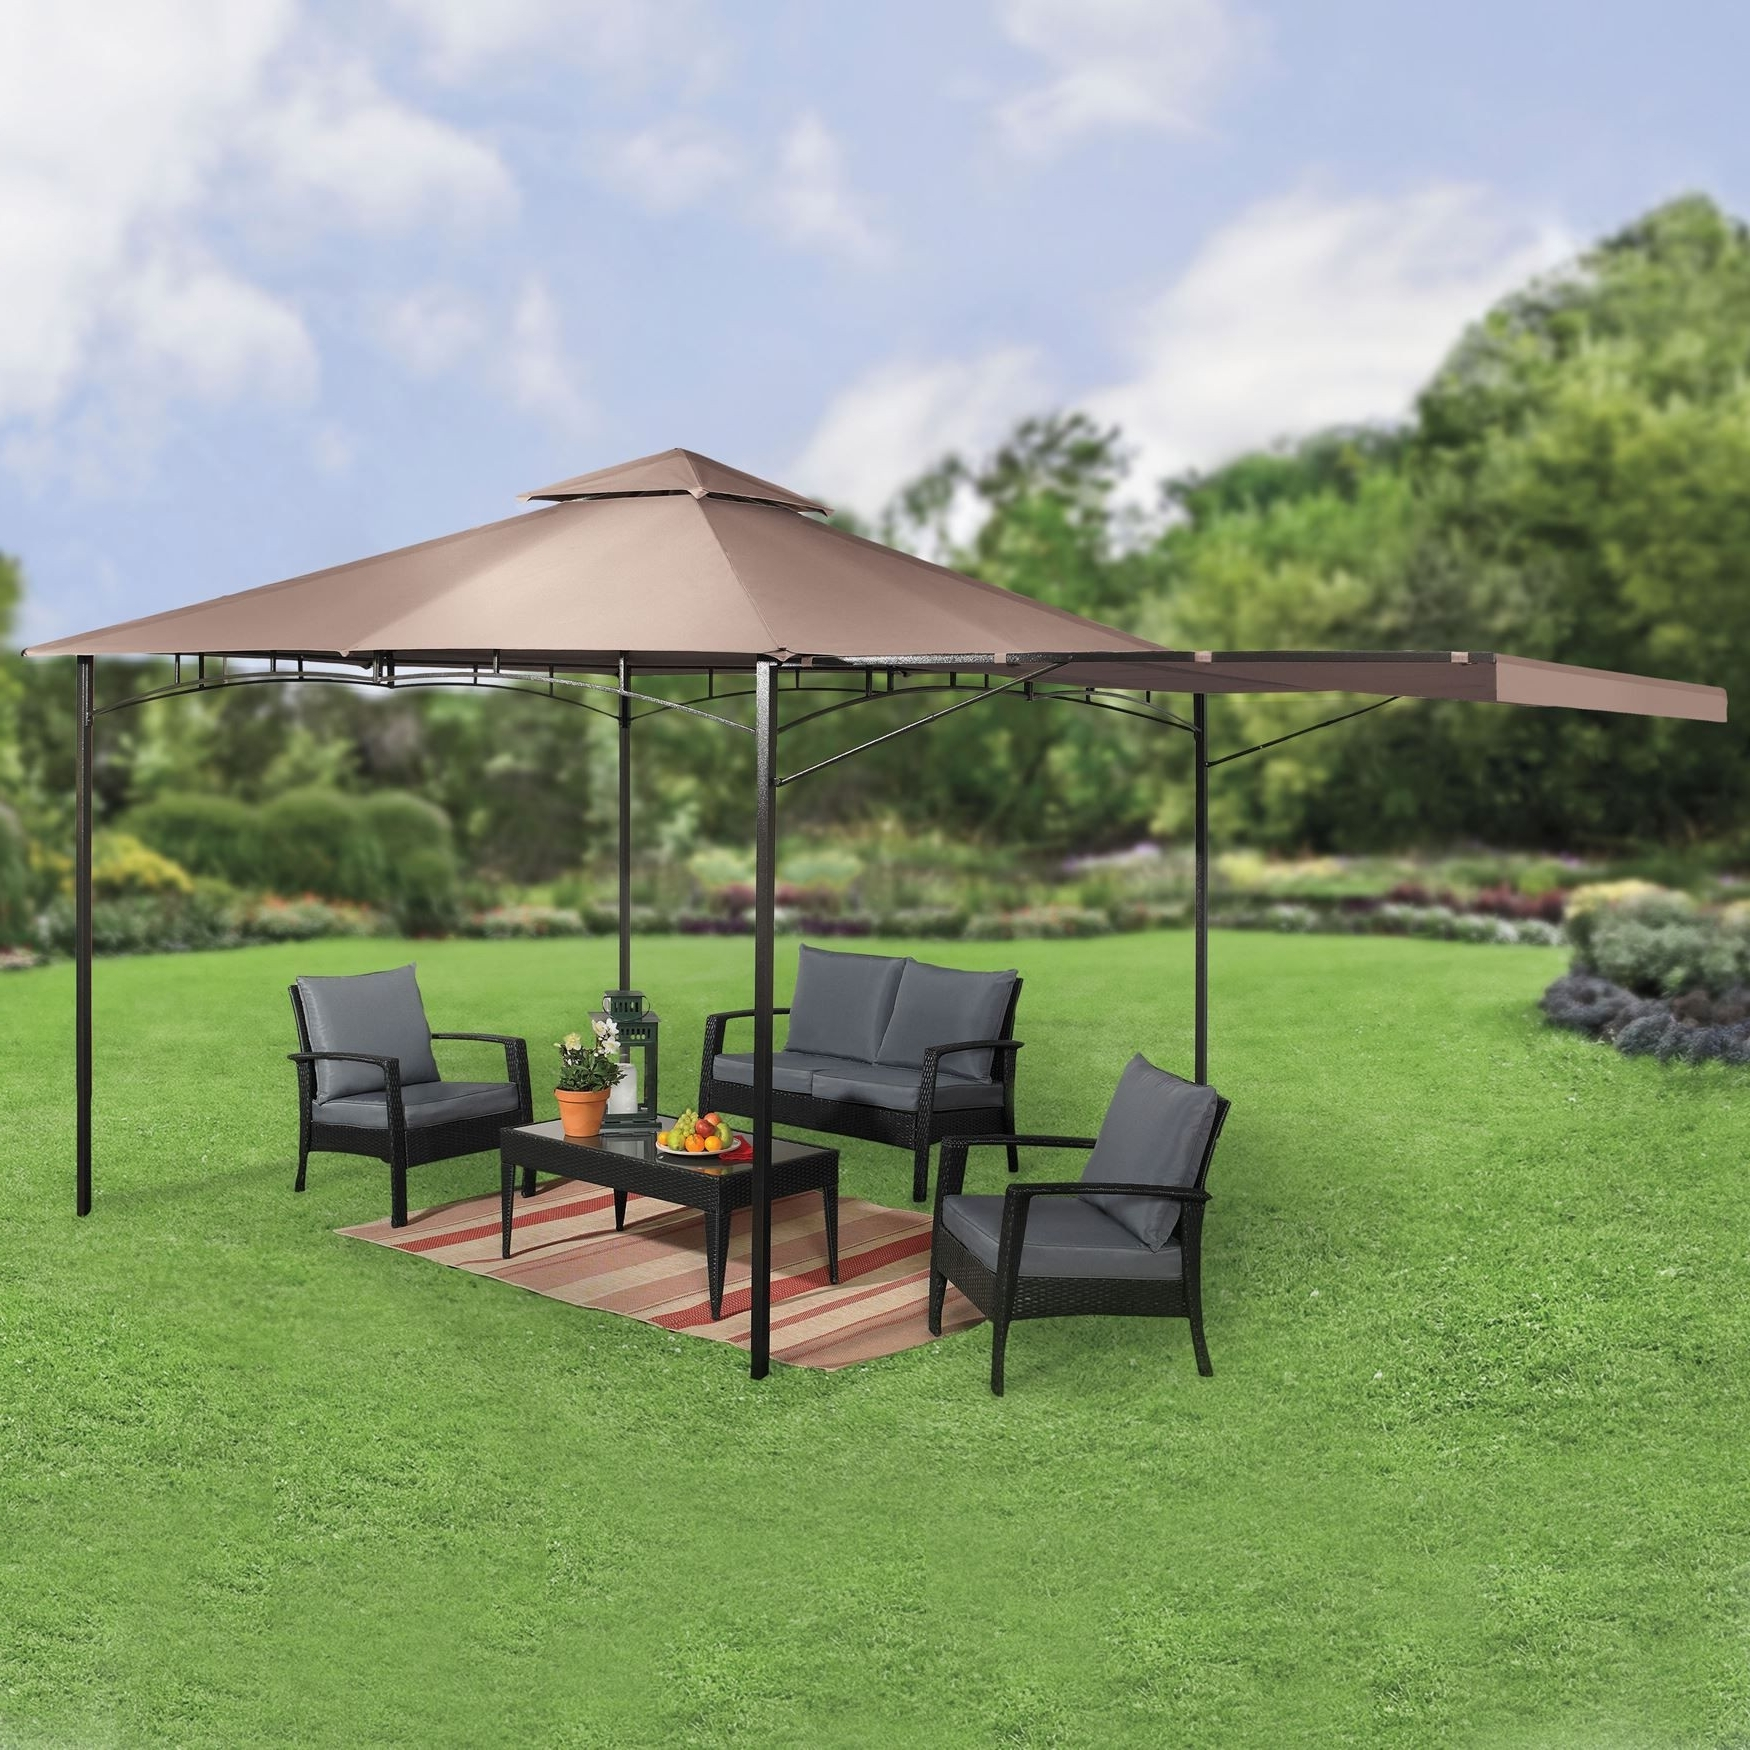 Extended Patio Umbrellas For 2018 Find Out Full Gallery Of 13 Plus Patio Umbrella Gazebo – Displaying (View 4 of 20)